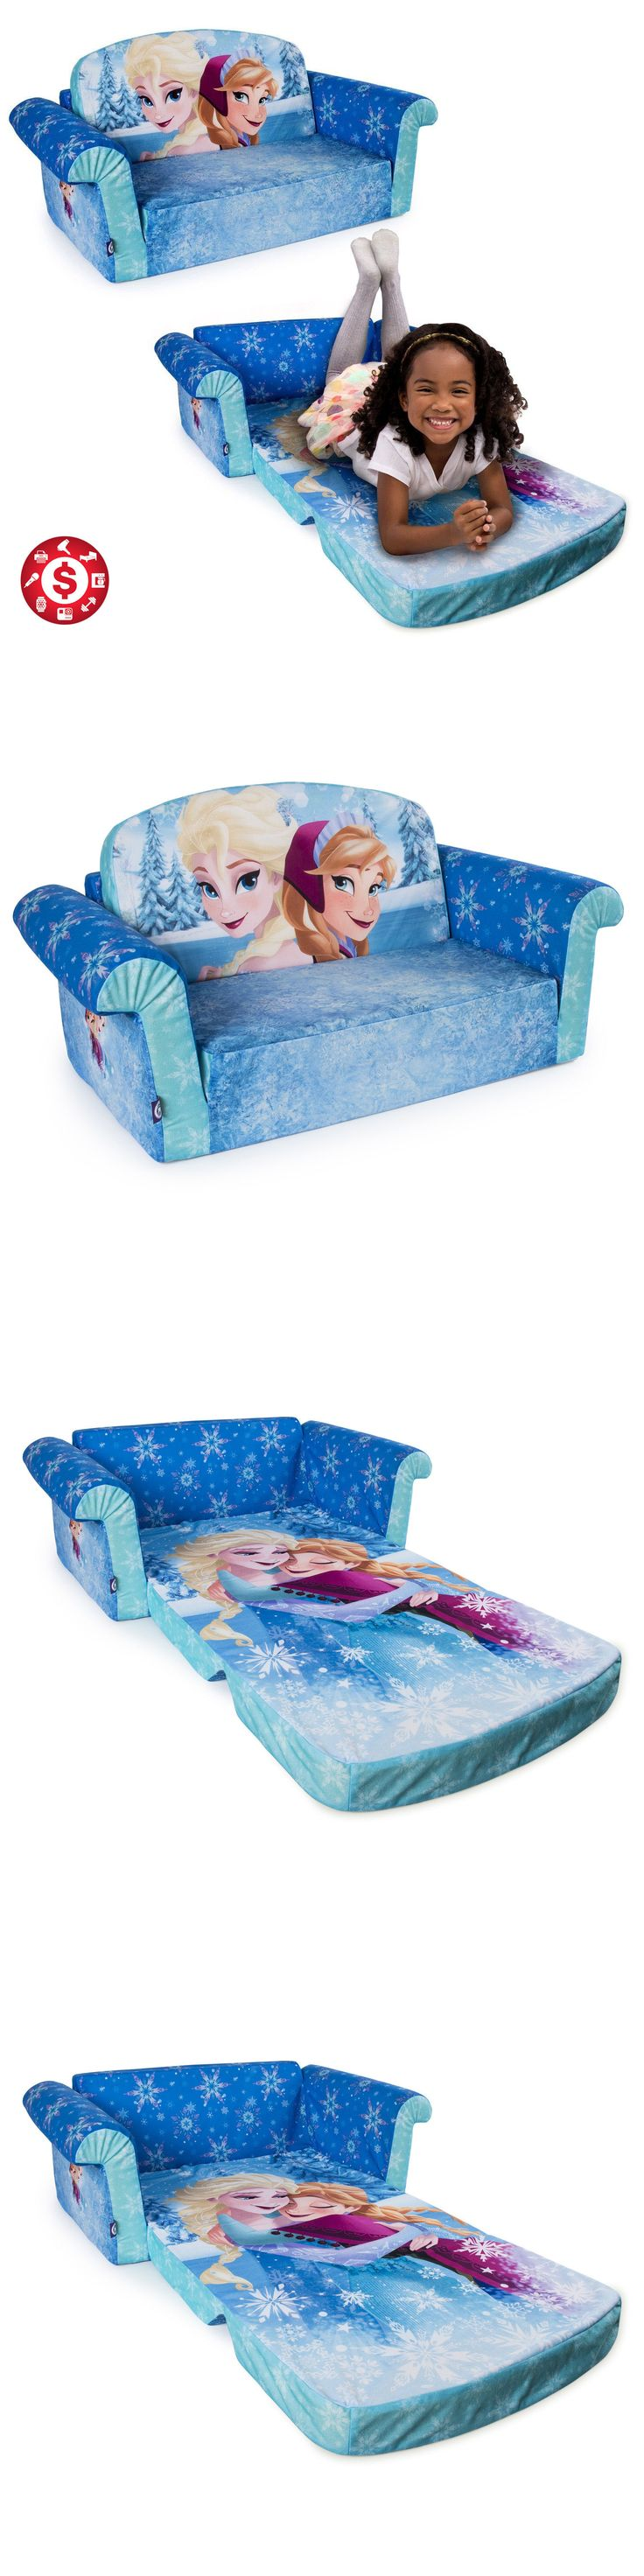 Sofas and Armchairs 134648: Sofa Open Bed Disney Kids Flip Toddler Couch Lounger Frozen Girls Room Furniture -> BUY IT NOW ONLY: $52.83 on eBay!